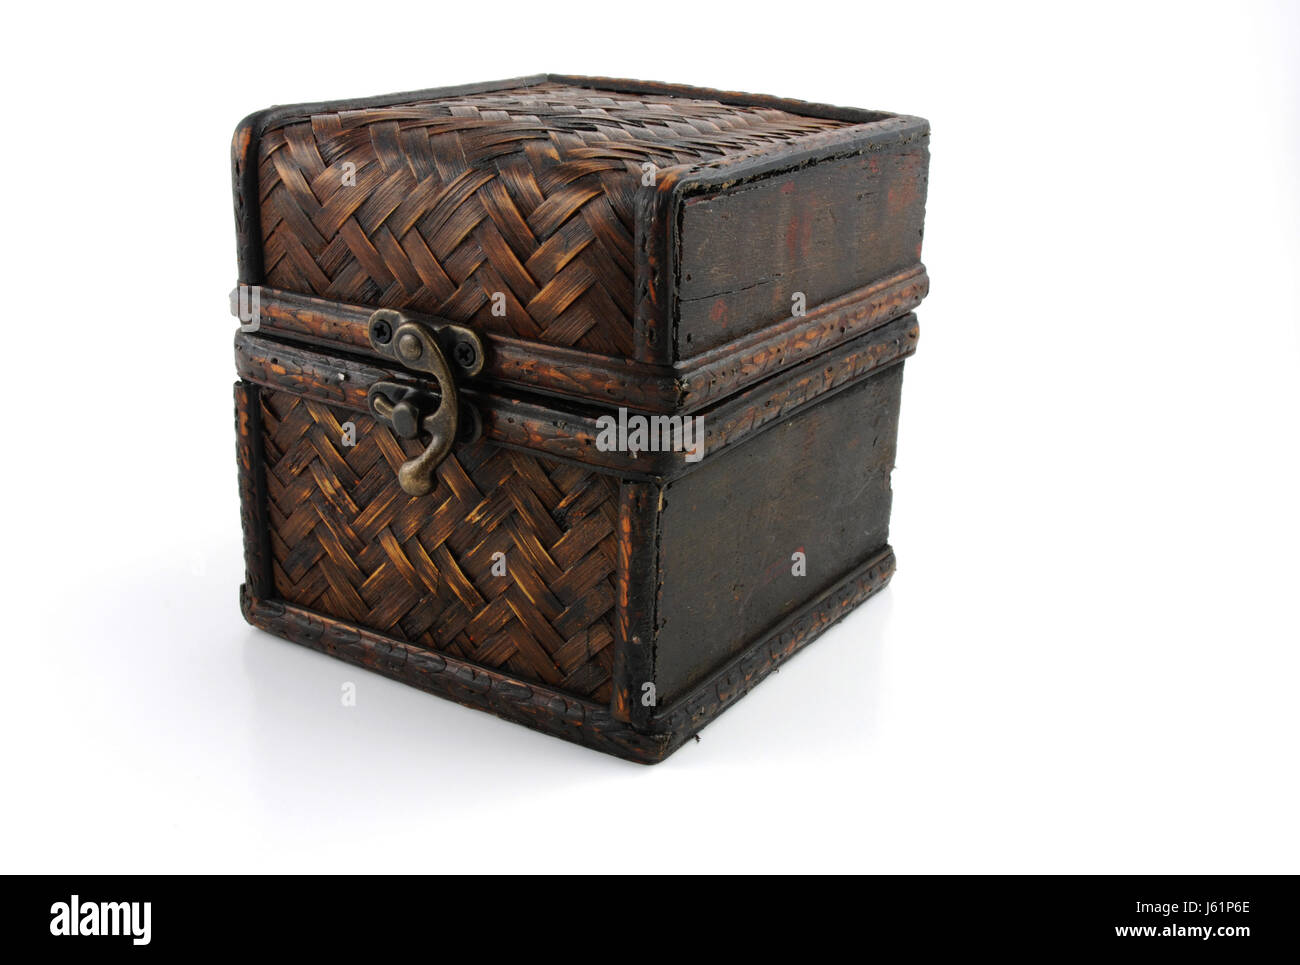 Wood Brown Brownish Brunette Chest Container Box Storage Wooden Containers  Box